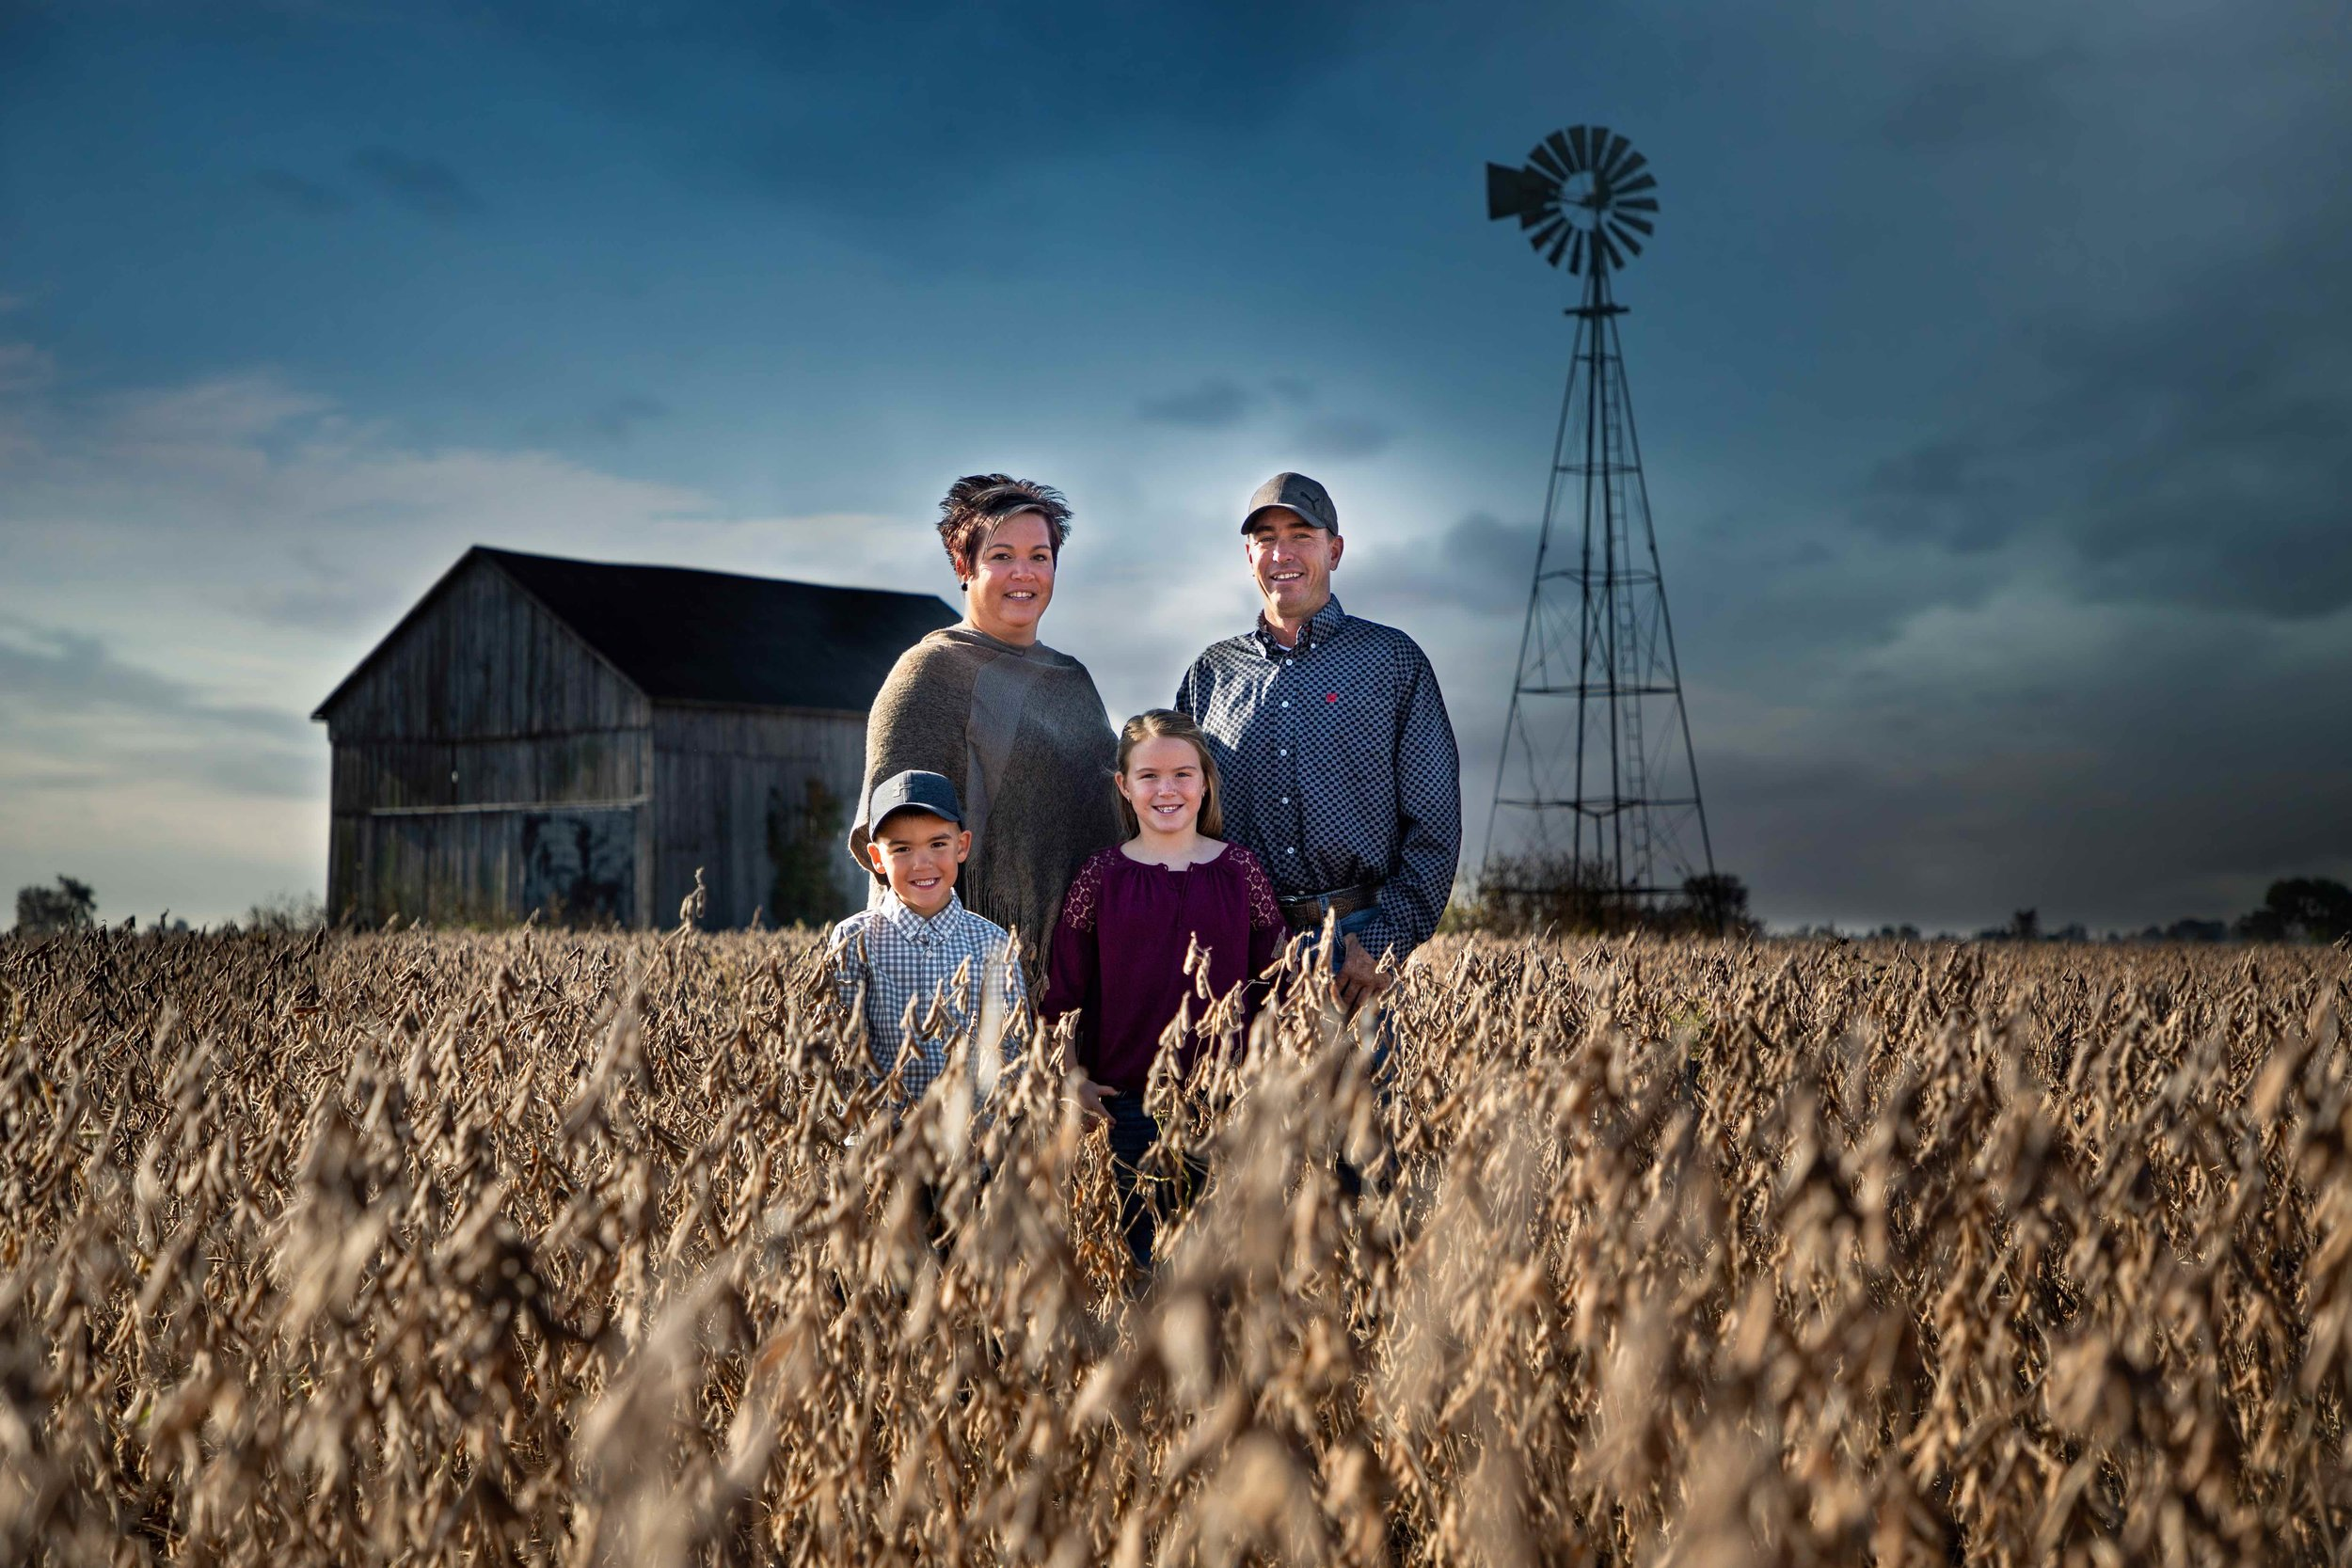 Jodie-Aldred-Photography-Chatham-Kent-Elgin-Middlesex-London-Ontario-Farm-Family-barn-soybeans.jpg